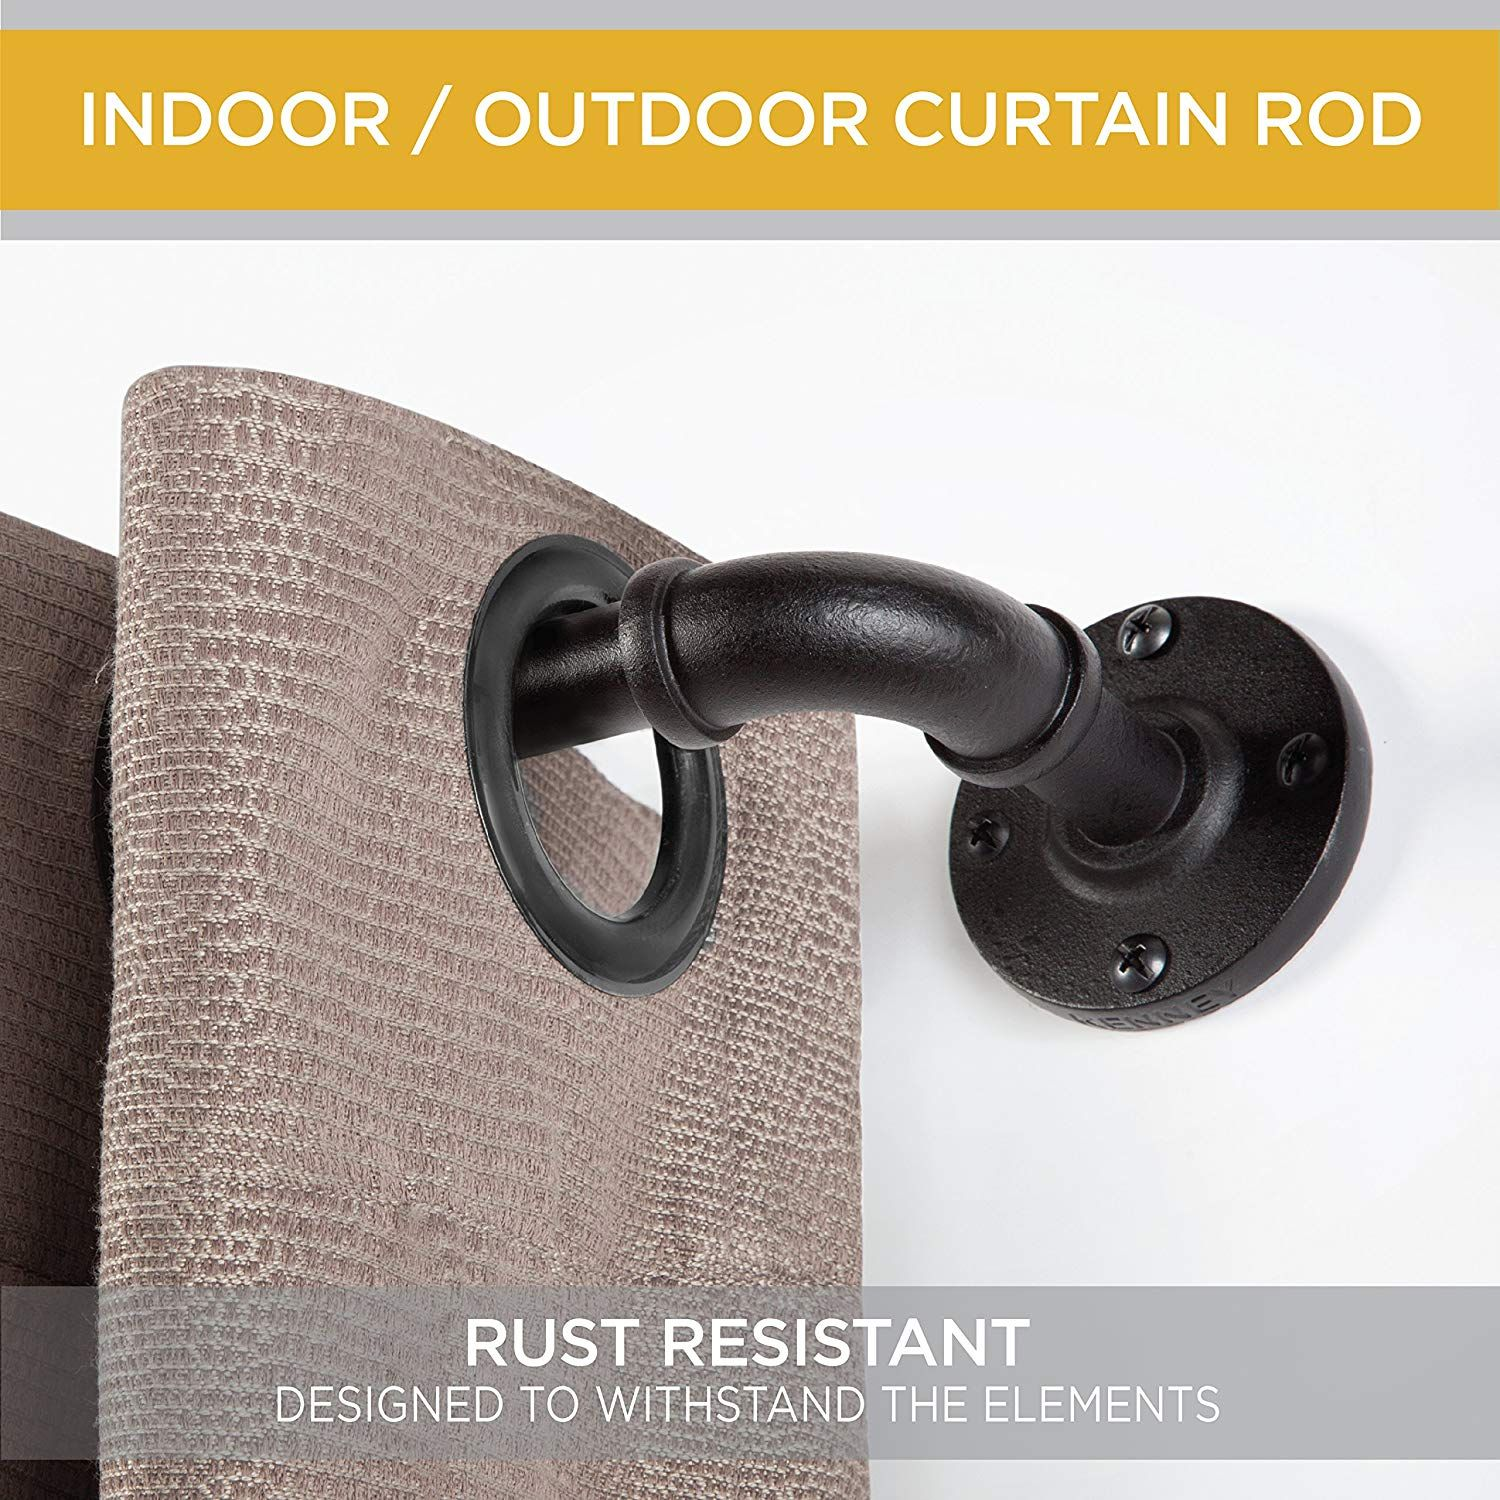 Curtain Rods are the best quality product for holding curtains to